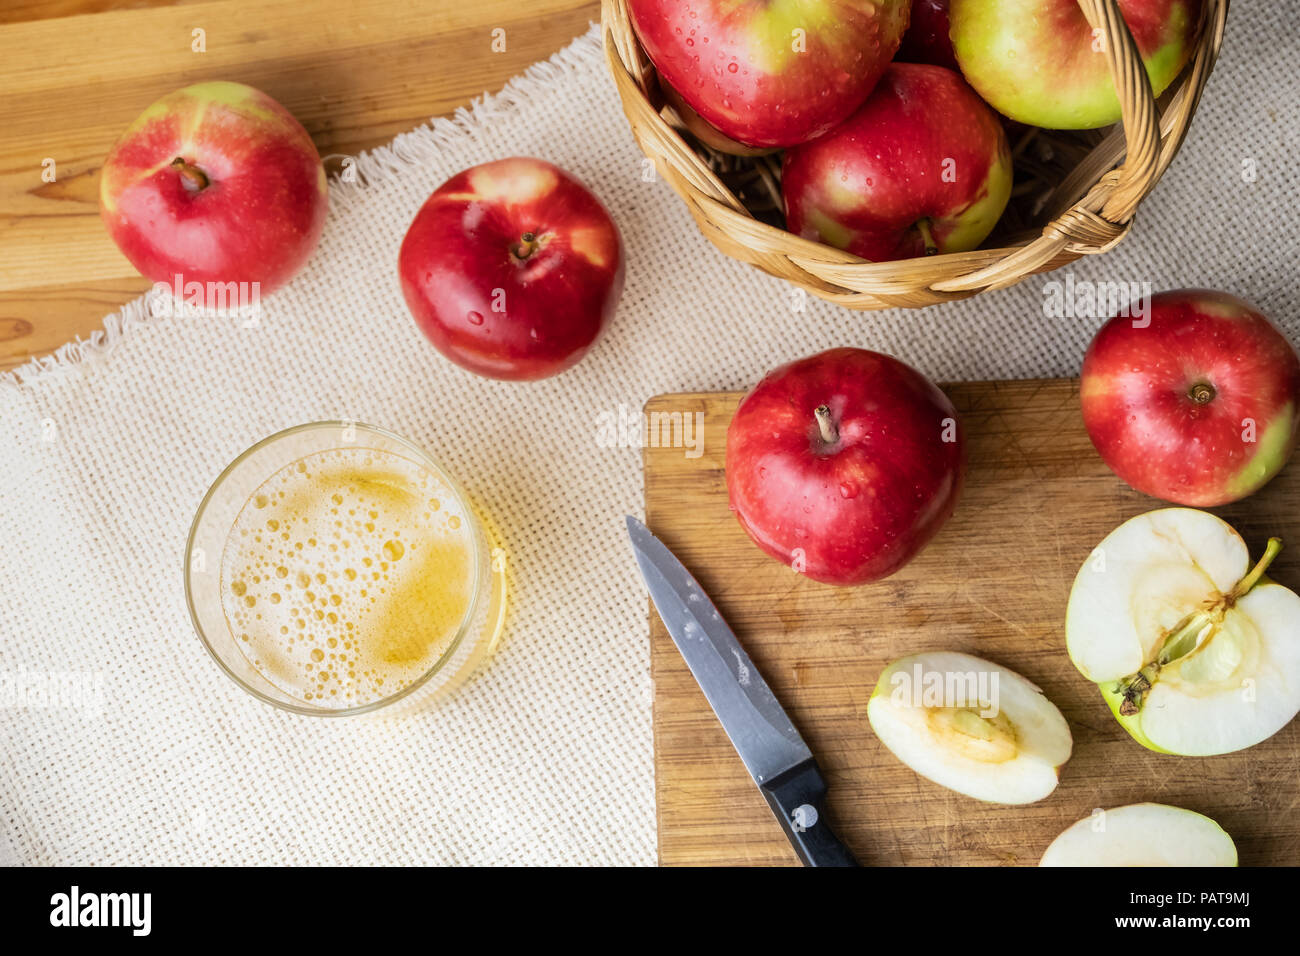 Top view of ripe juicy apples and glass of cidre drink on rustic wooden table. Glass of home made cider and locally grown organic apples, shot from ab - Stock Image